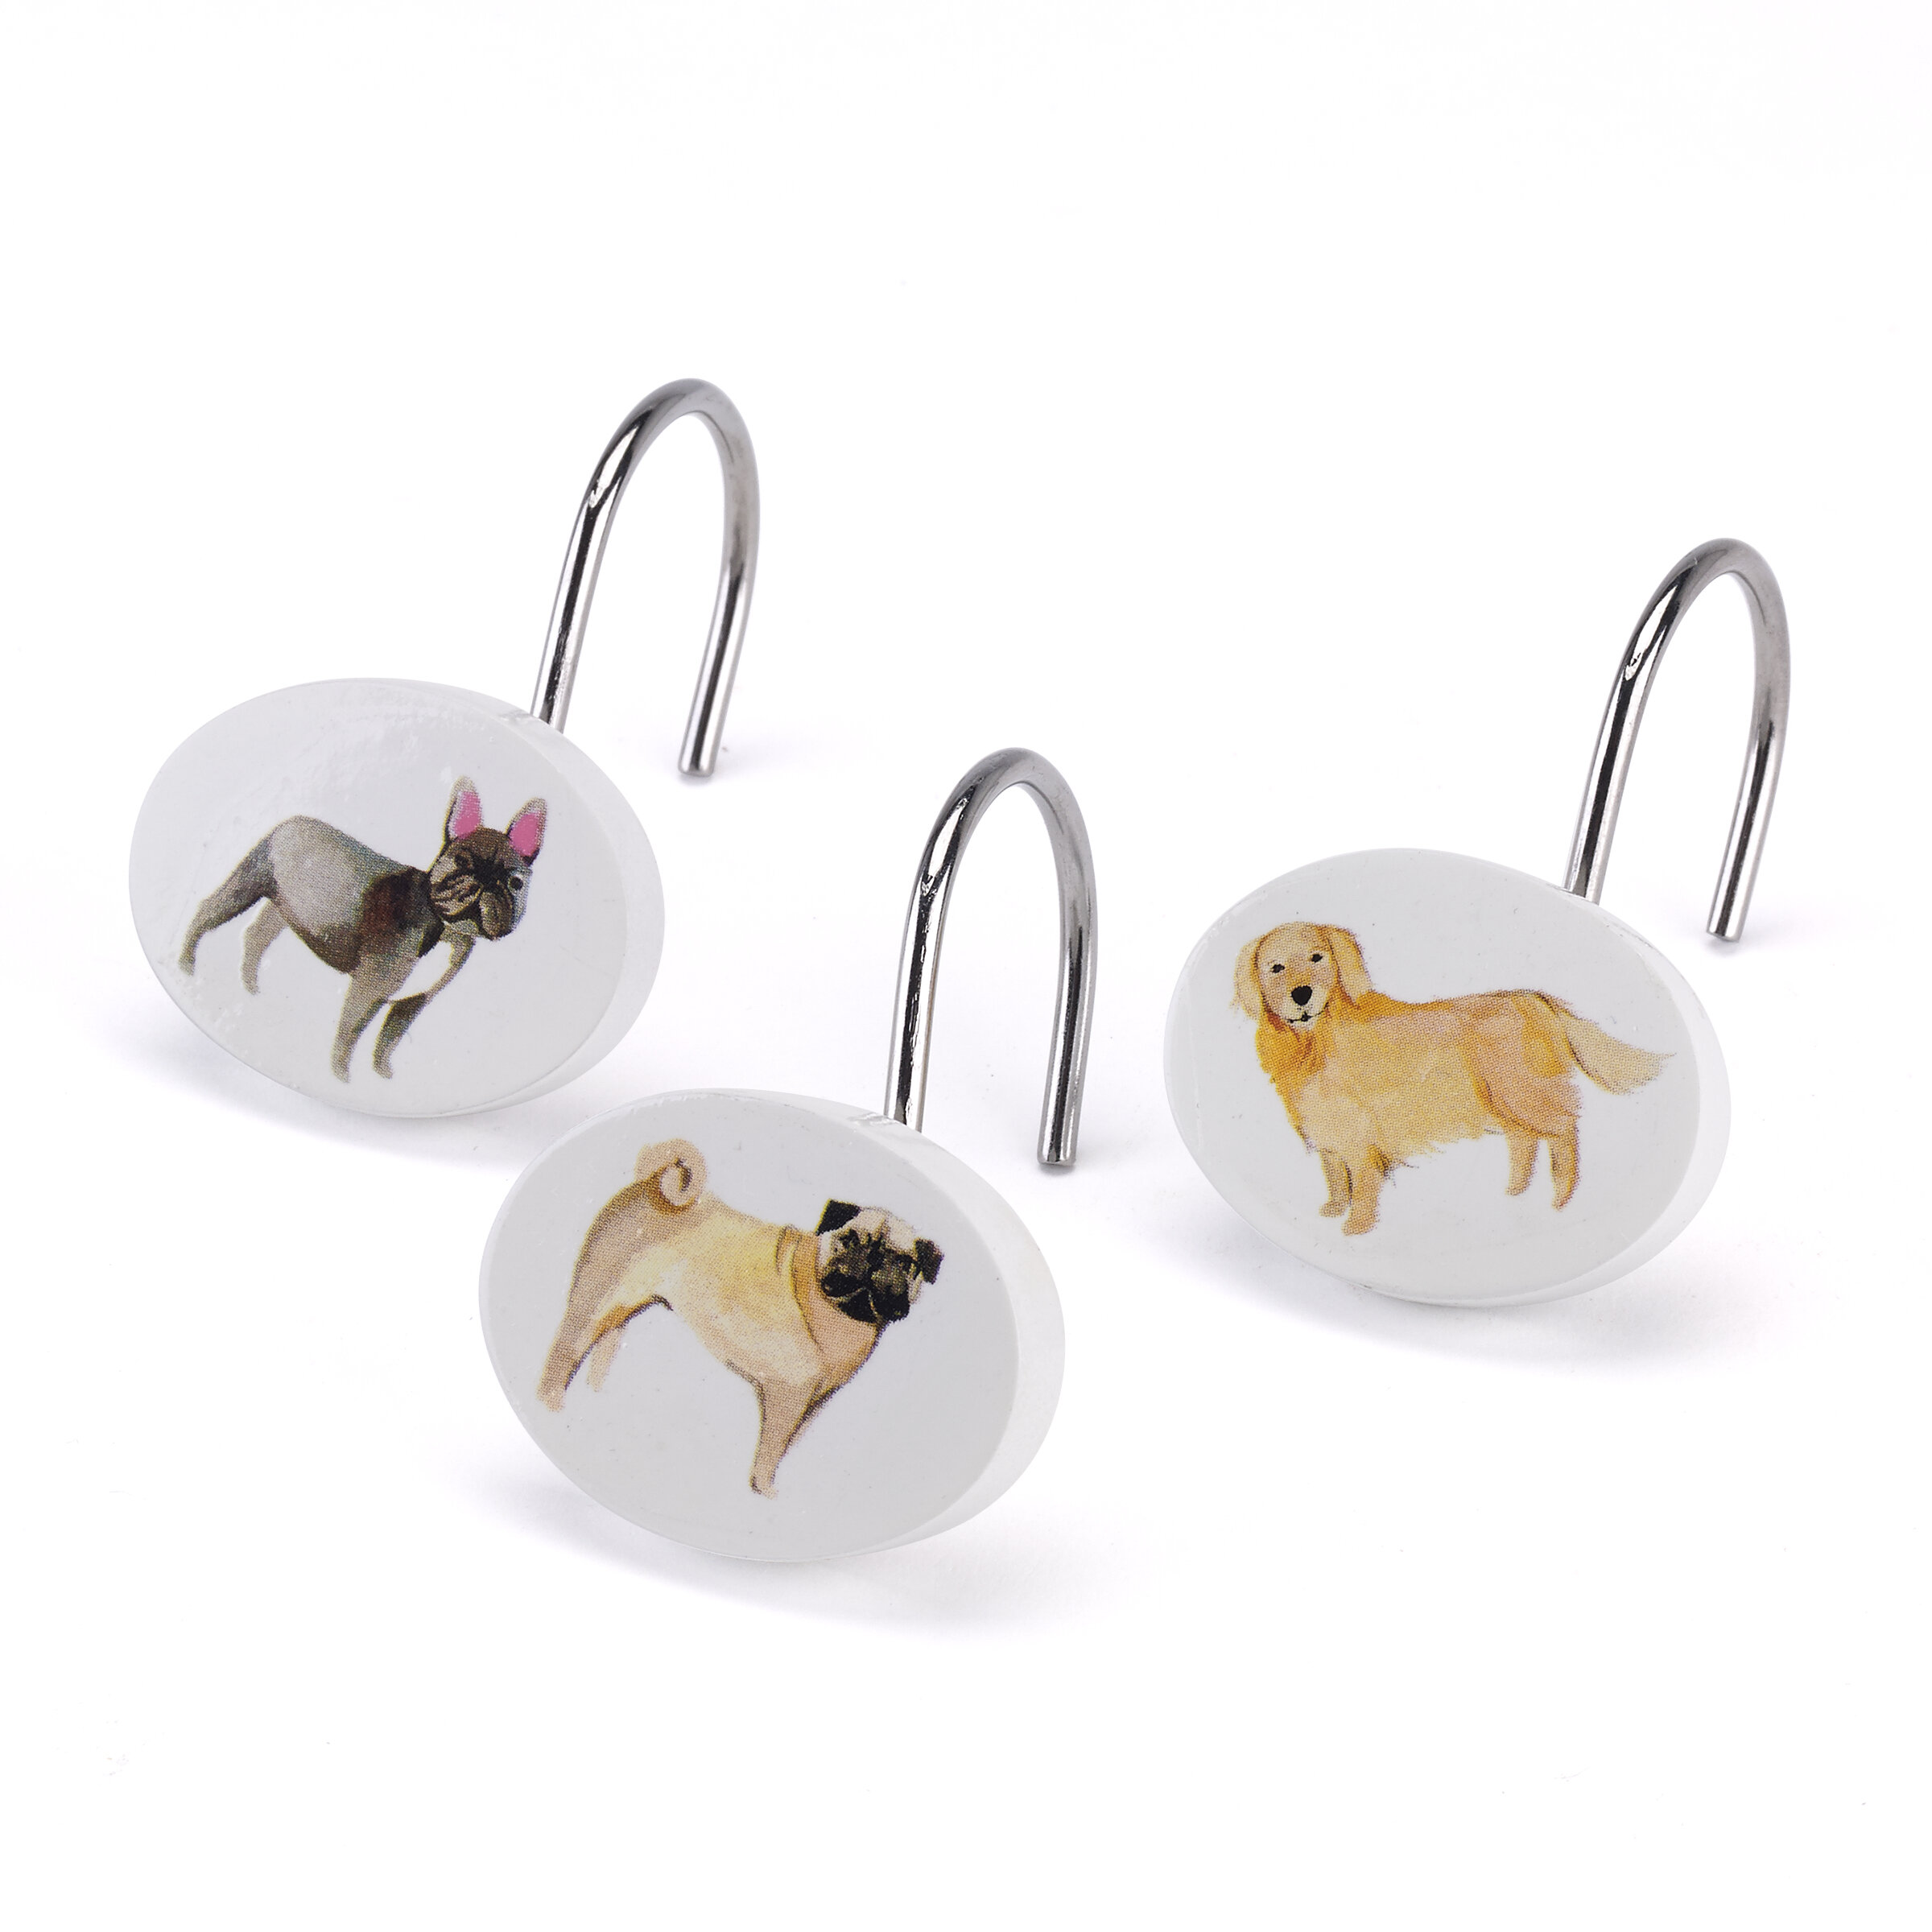 Avanti Linens Dogs On Parade Shower Curtain Hooks